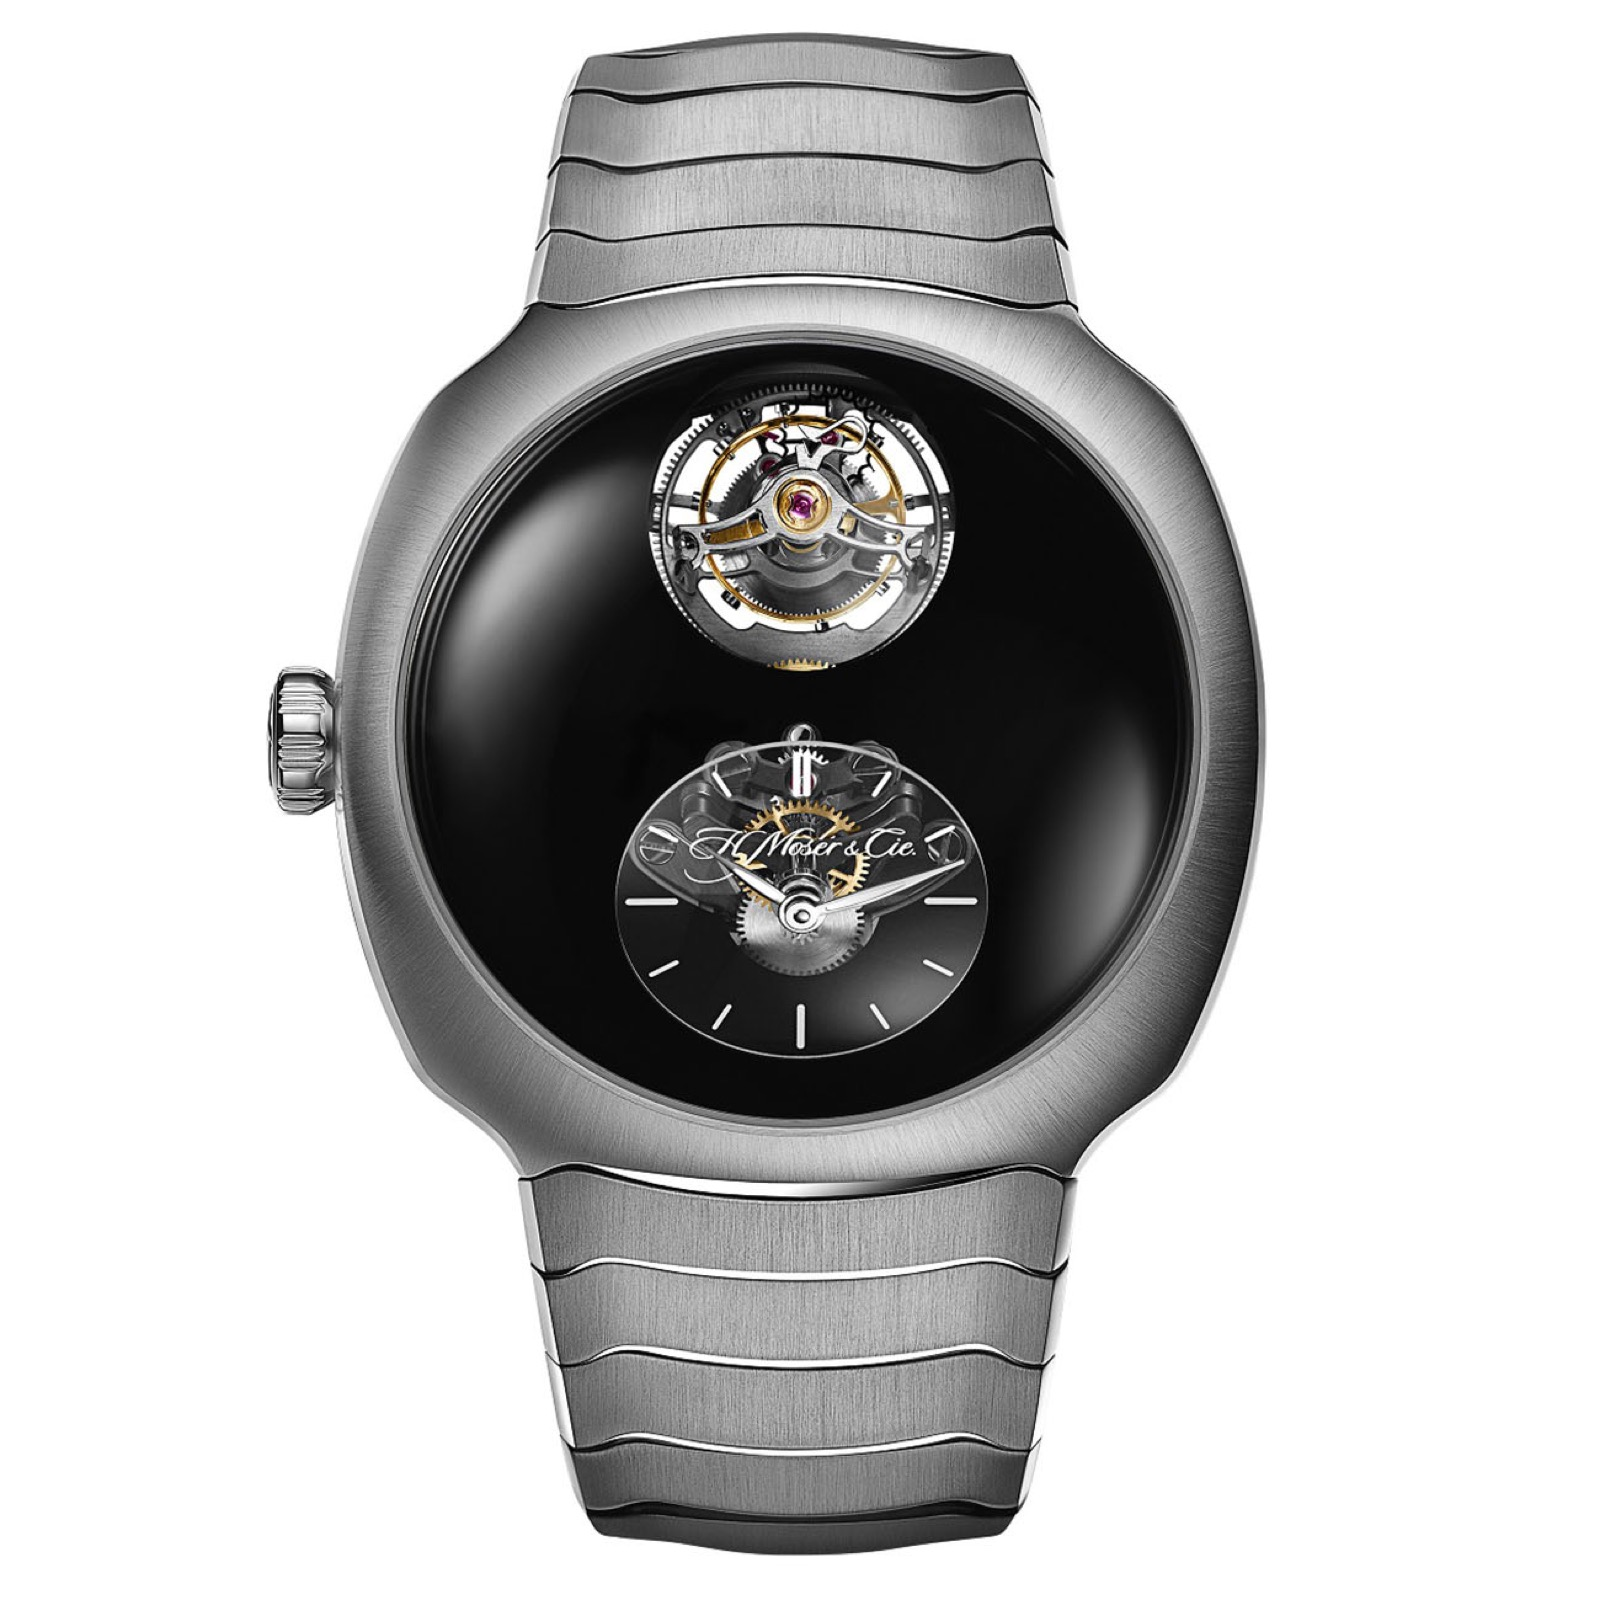 H-Moser-Cie-only-watch-2021